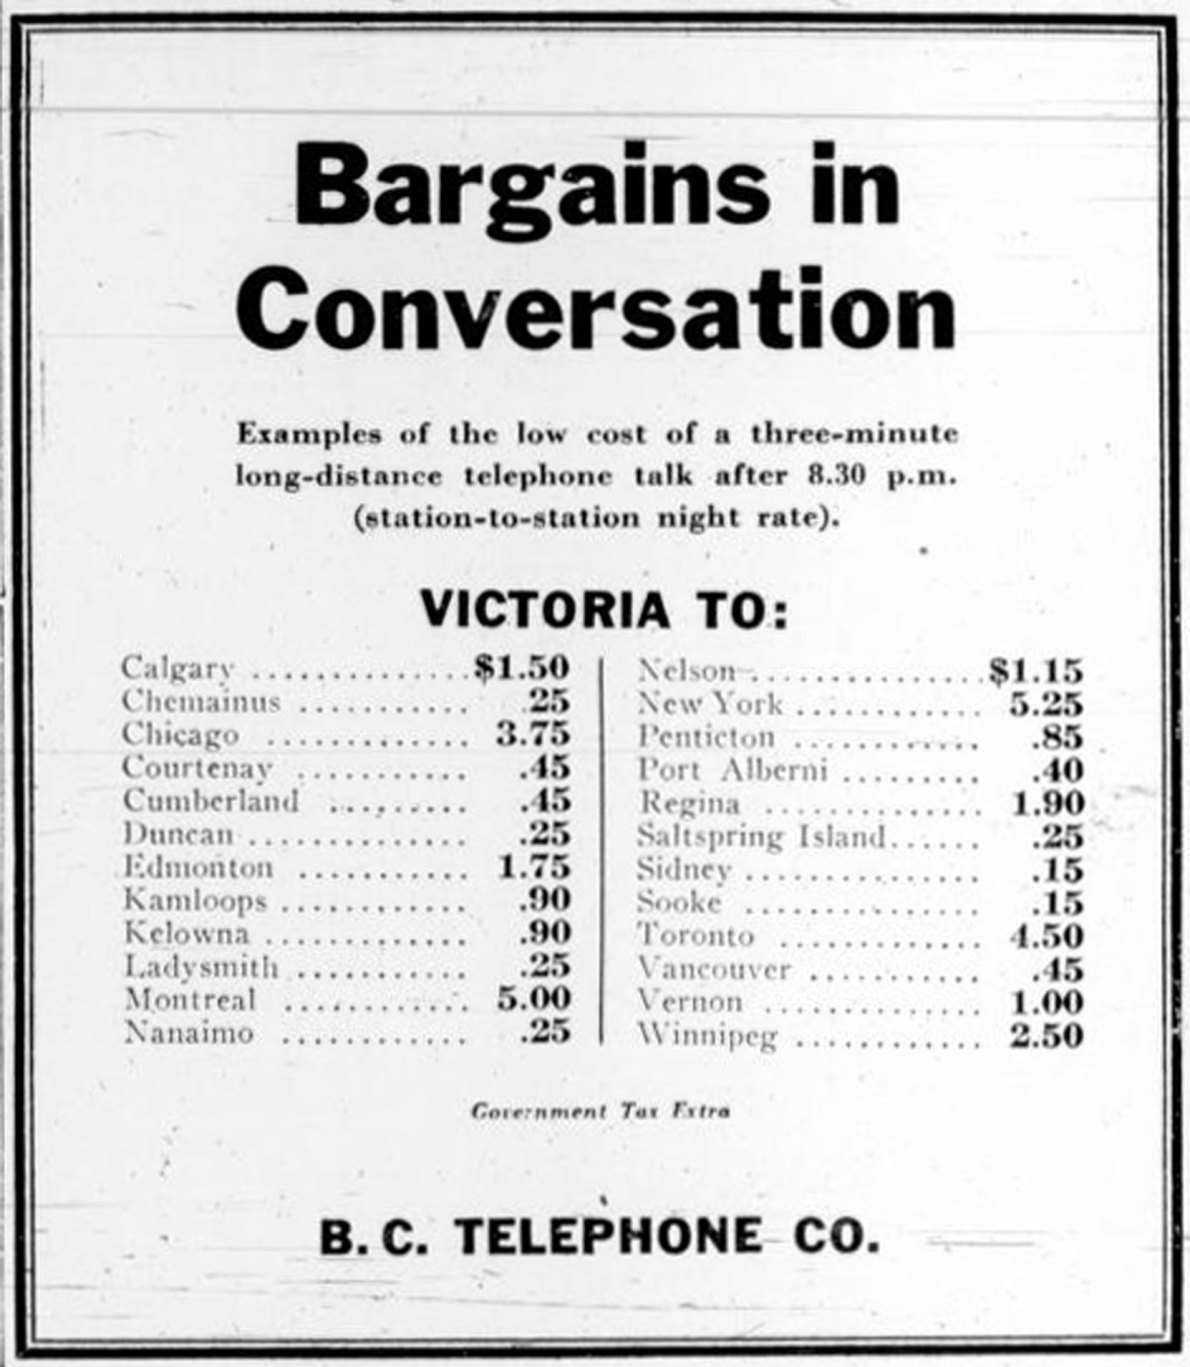 1935 advertisement for B.C. Telephone Company showing long distance rates from Victoria to other cities (Victoria Online Sightseeing Tours collection)